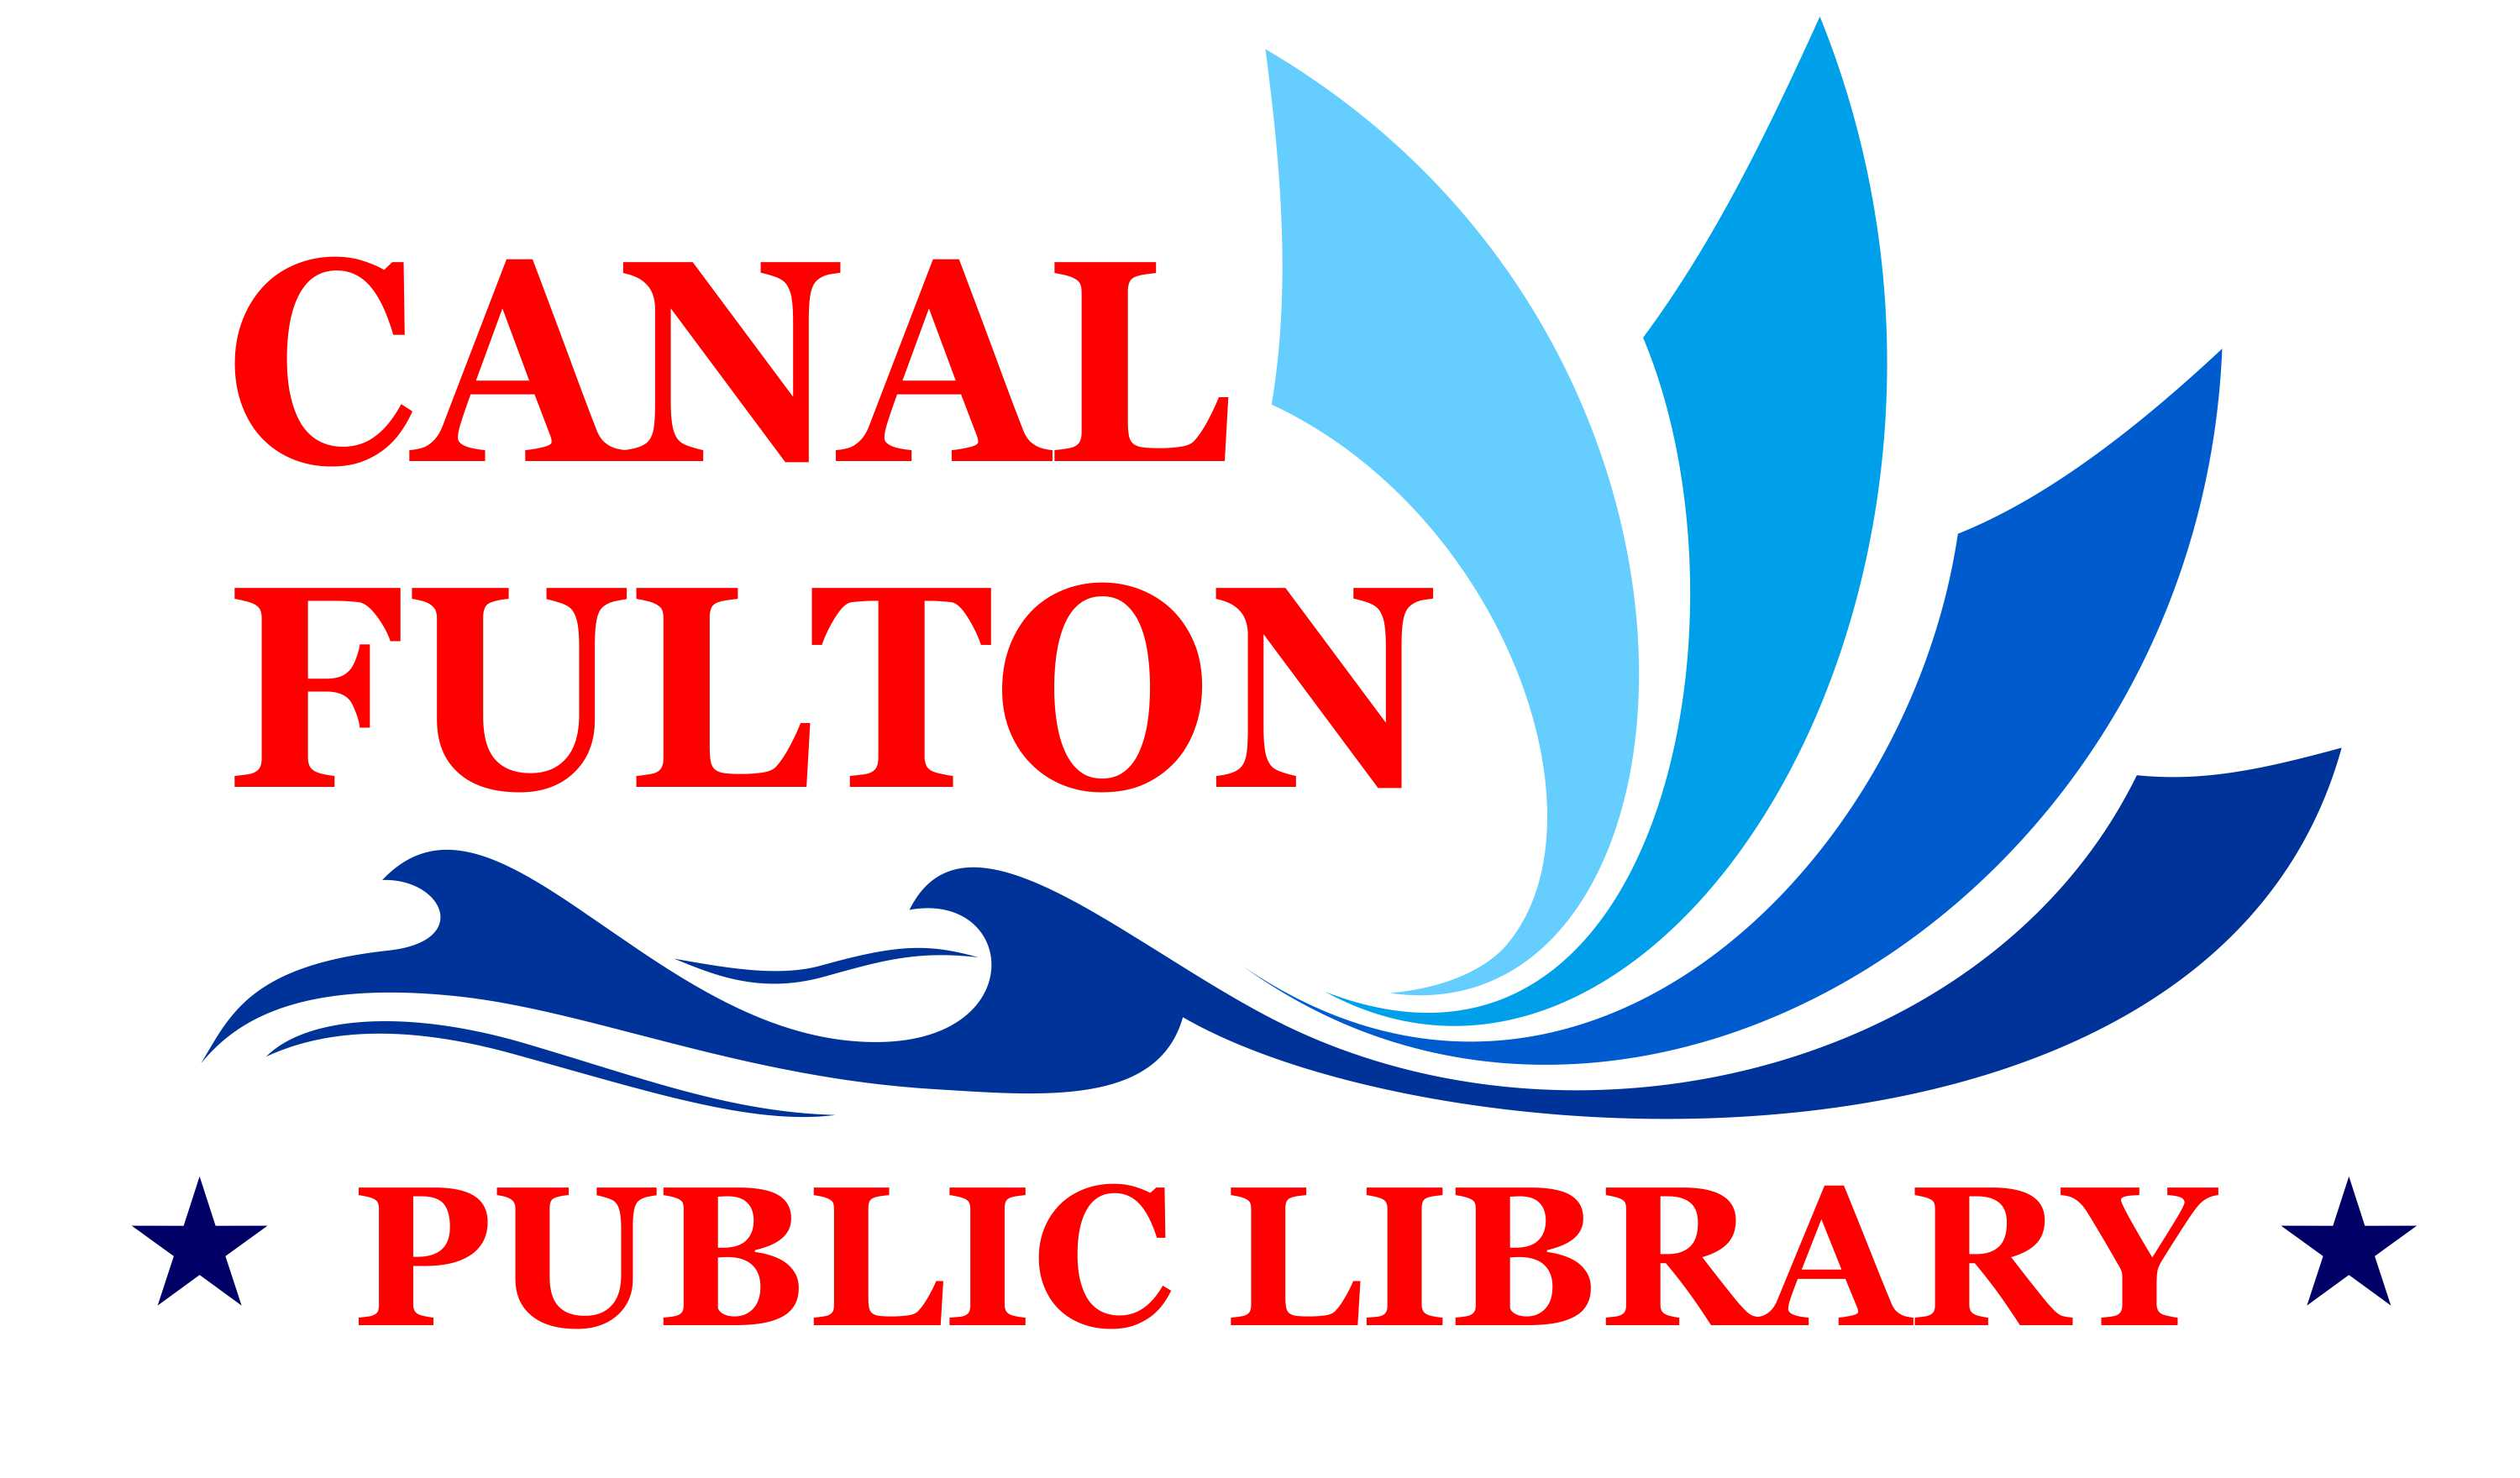 Canal Fulton Public Library